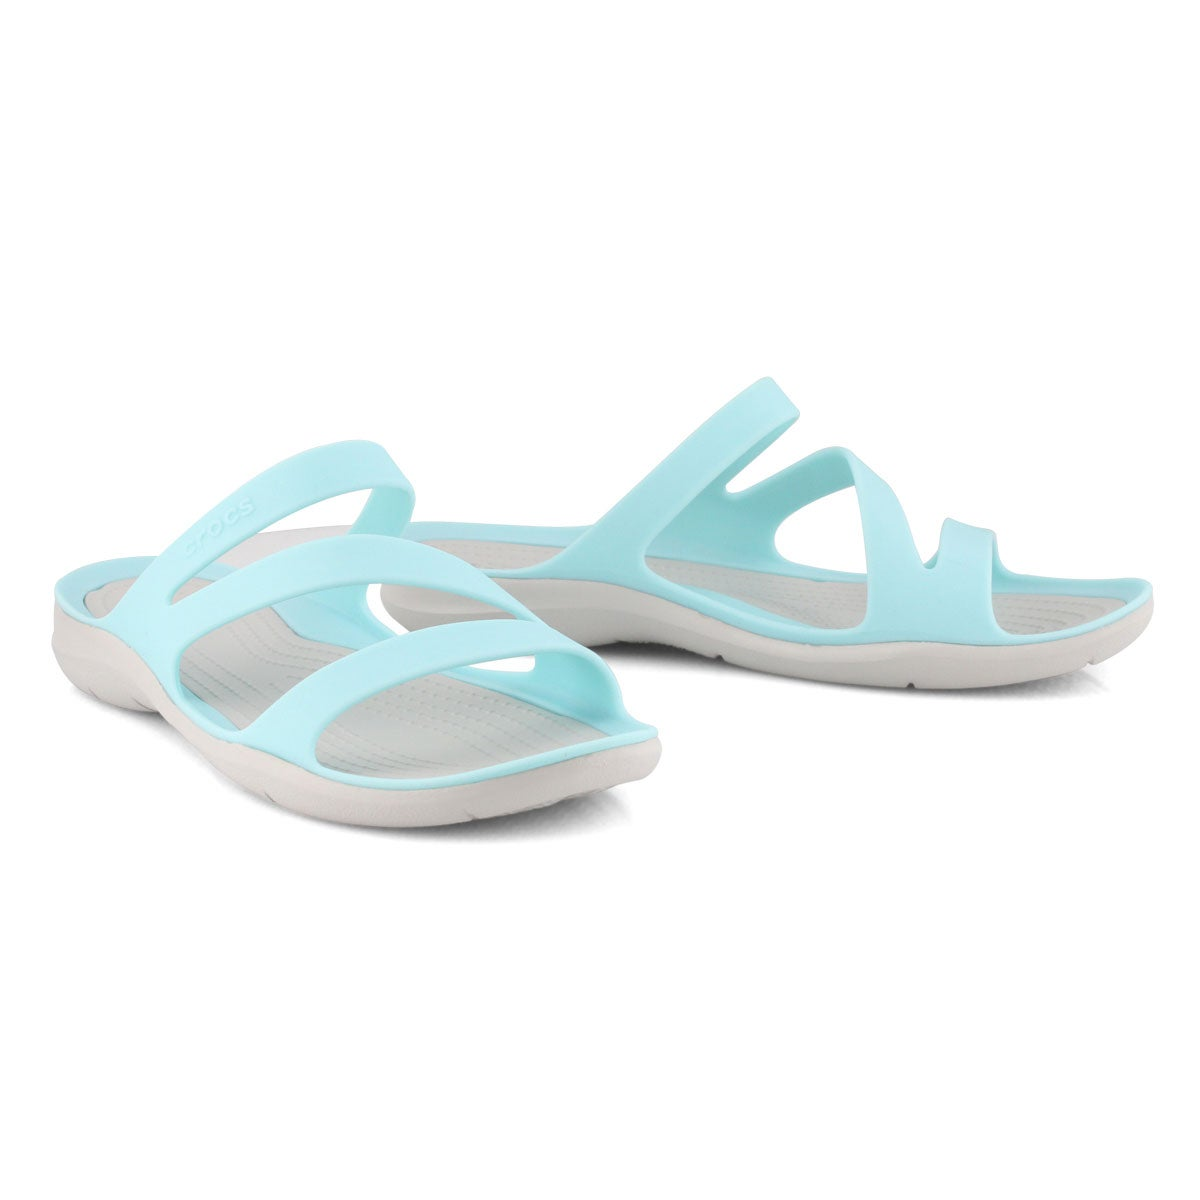 Women's Swiftwater Sandal - Ice Blue/Pearl White